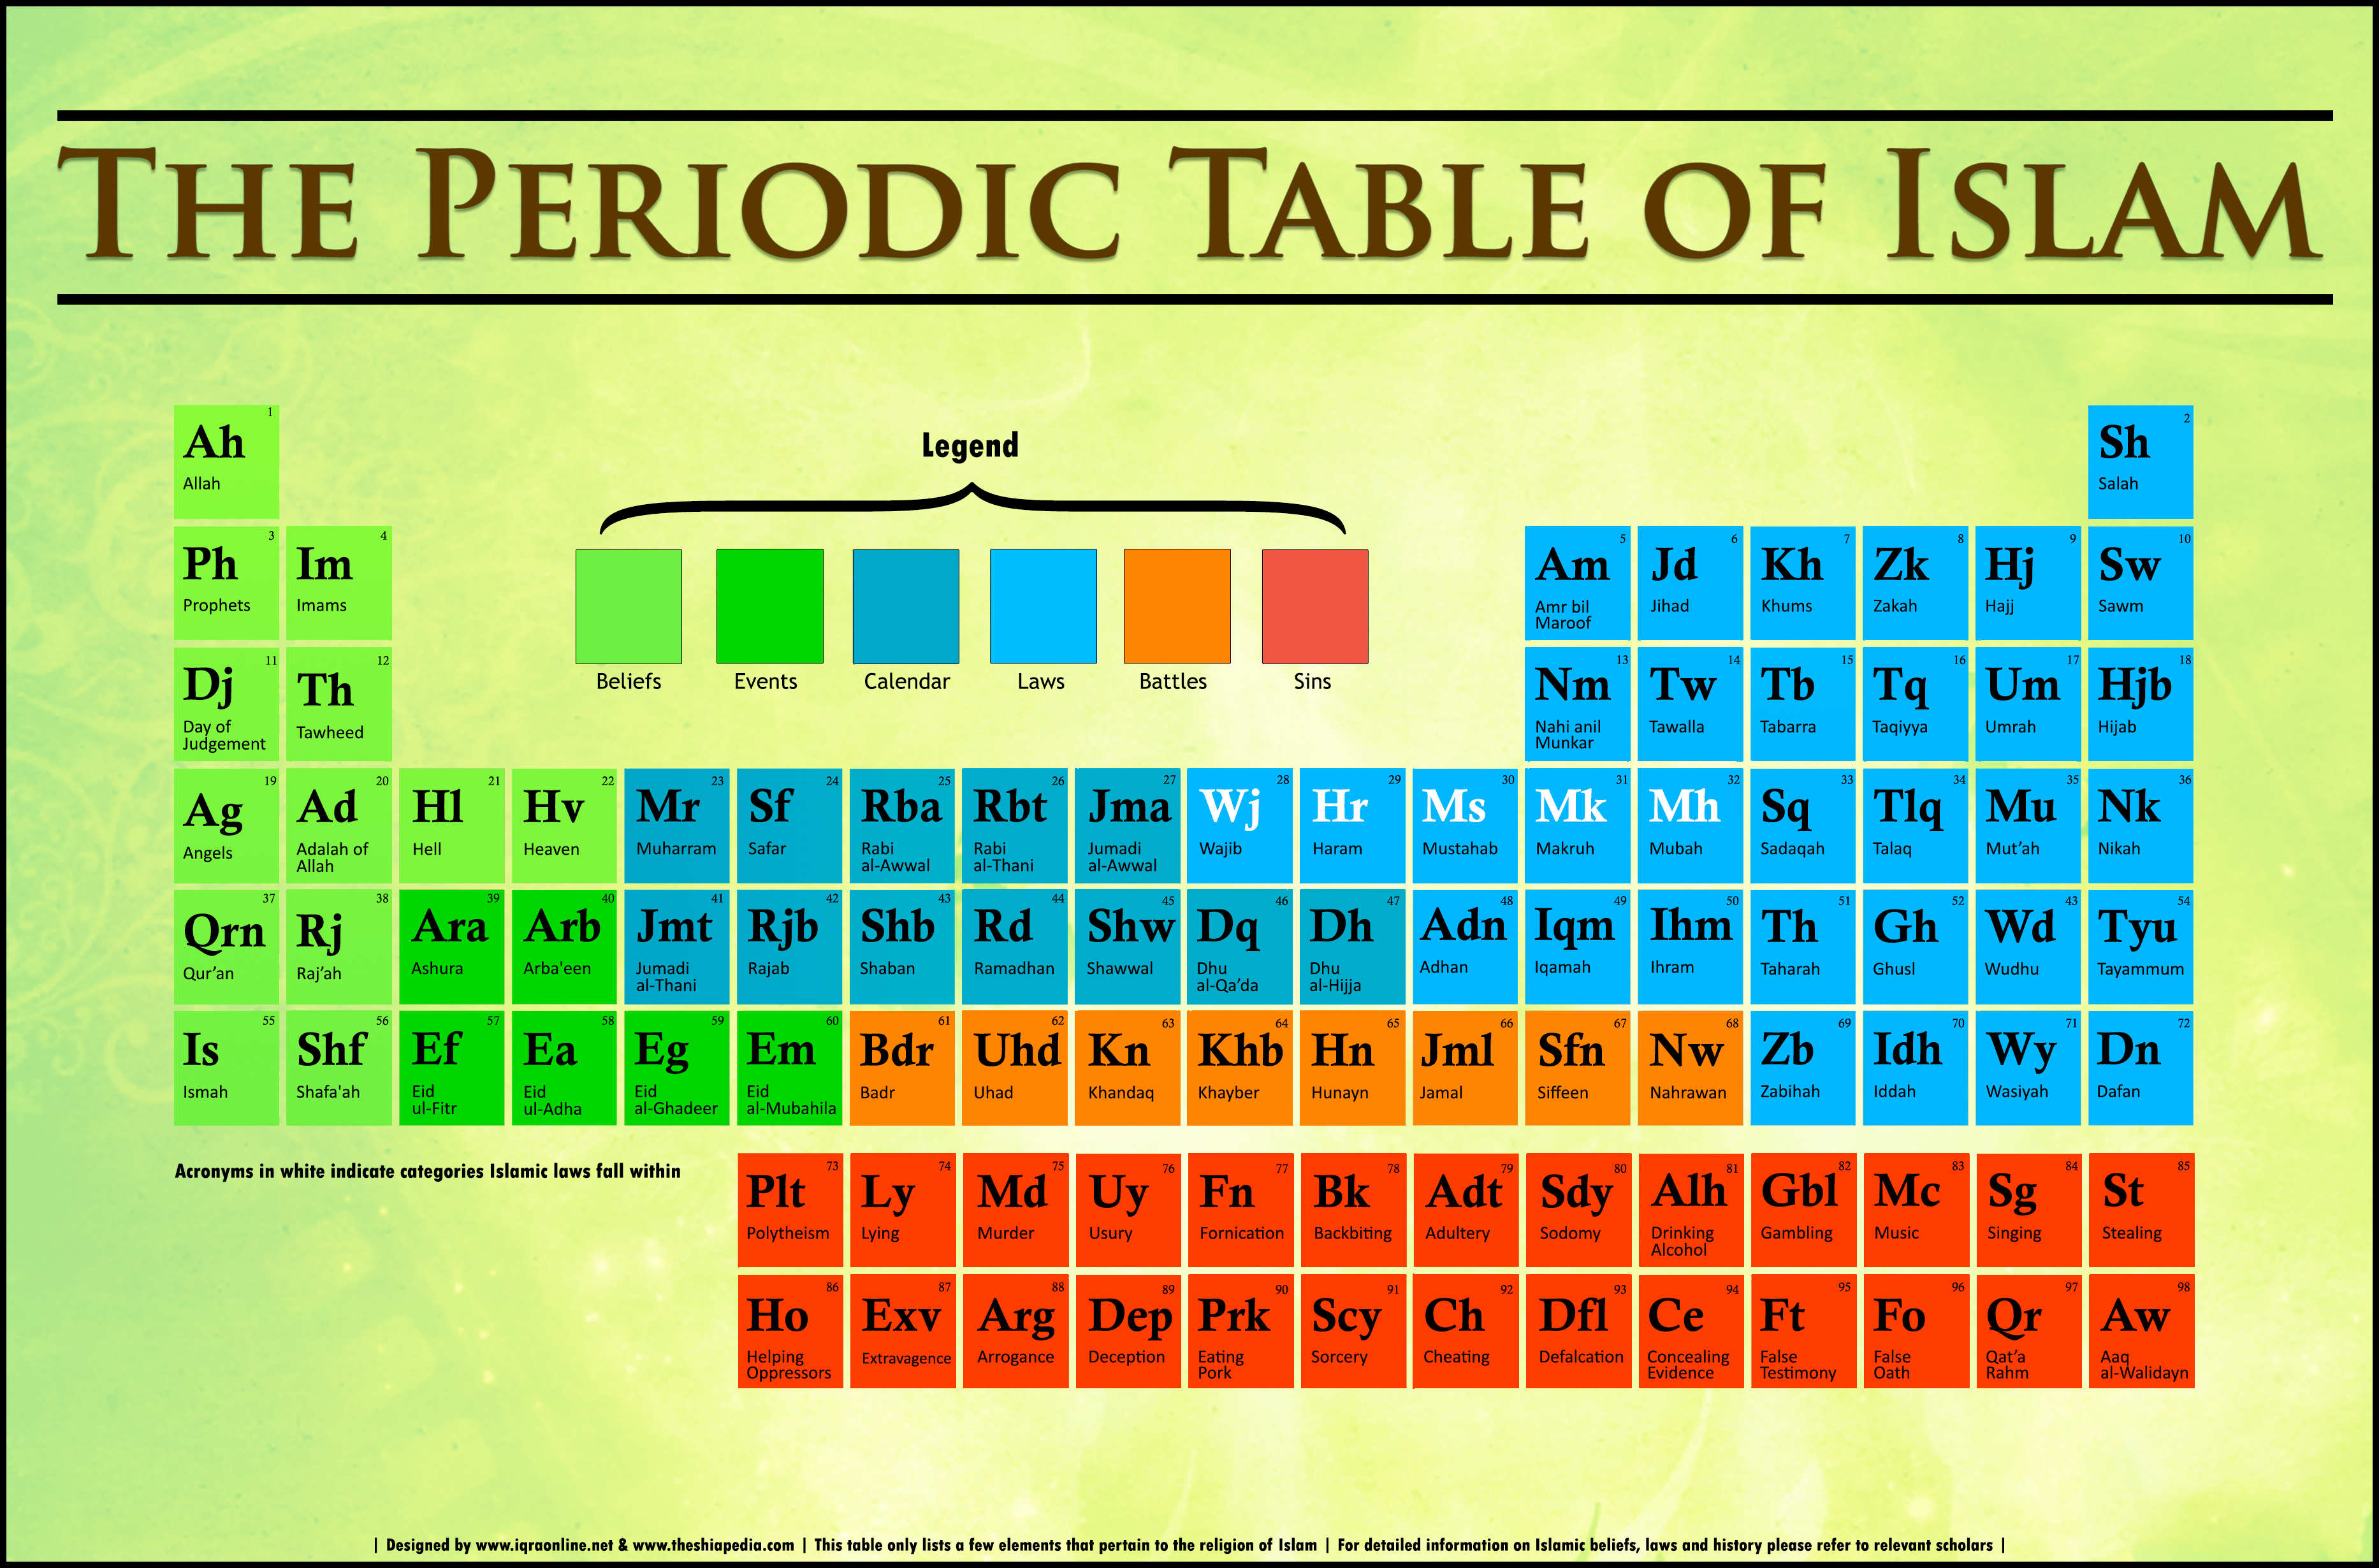 The Periodic Table of Islam